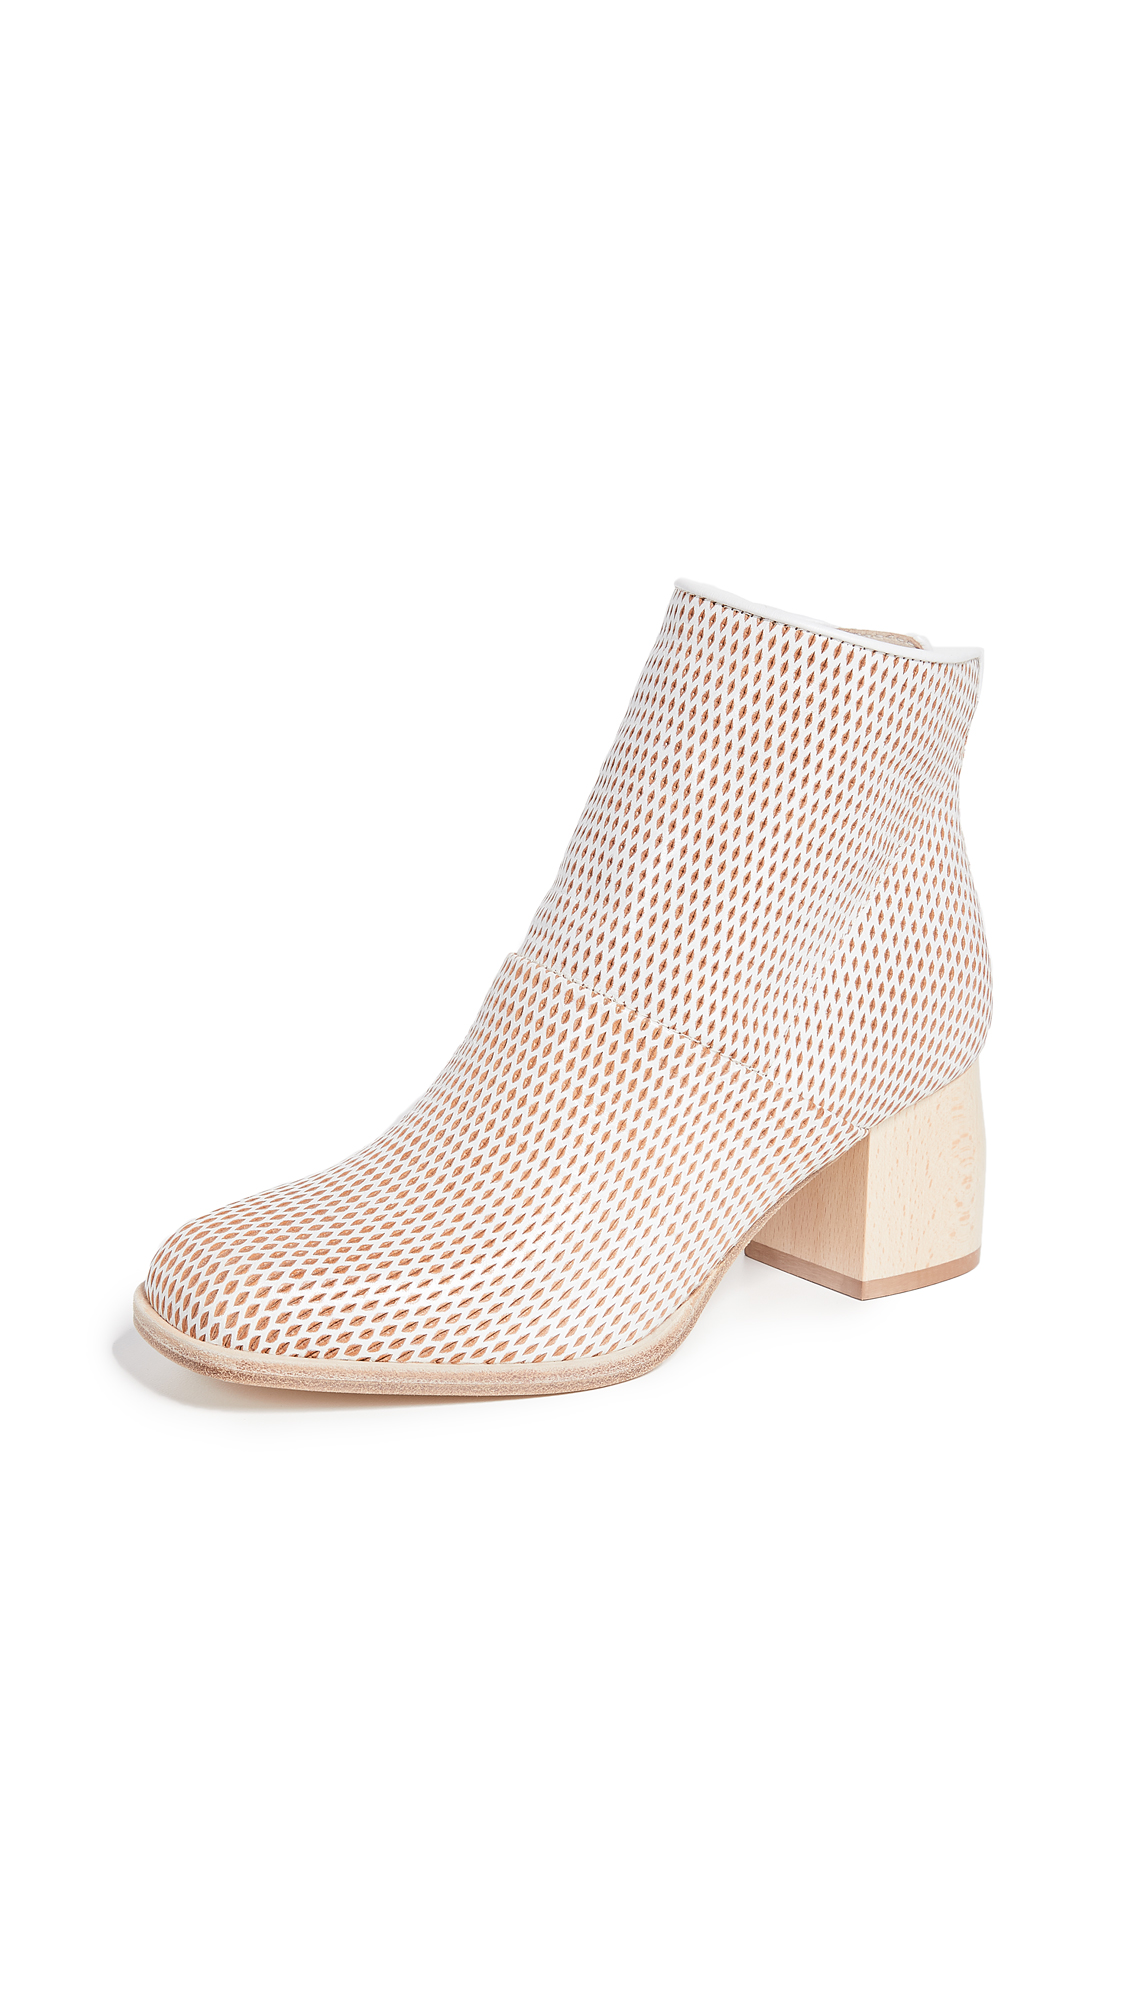 LD Tuttle The Loop Booties - Chalk Diamond Cut